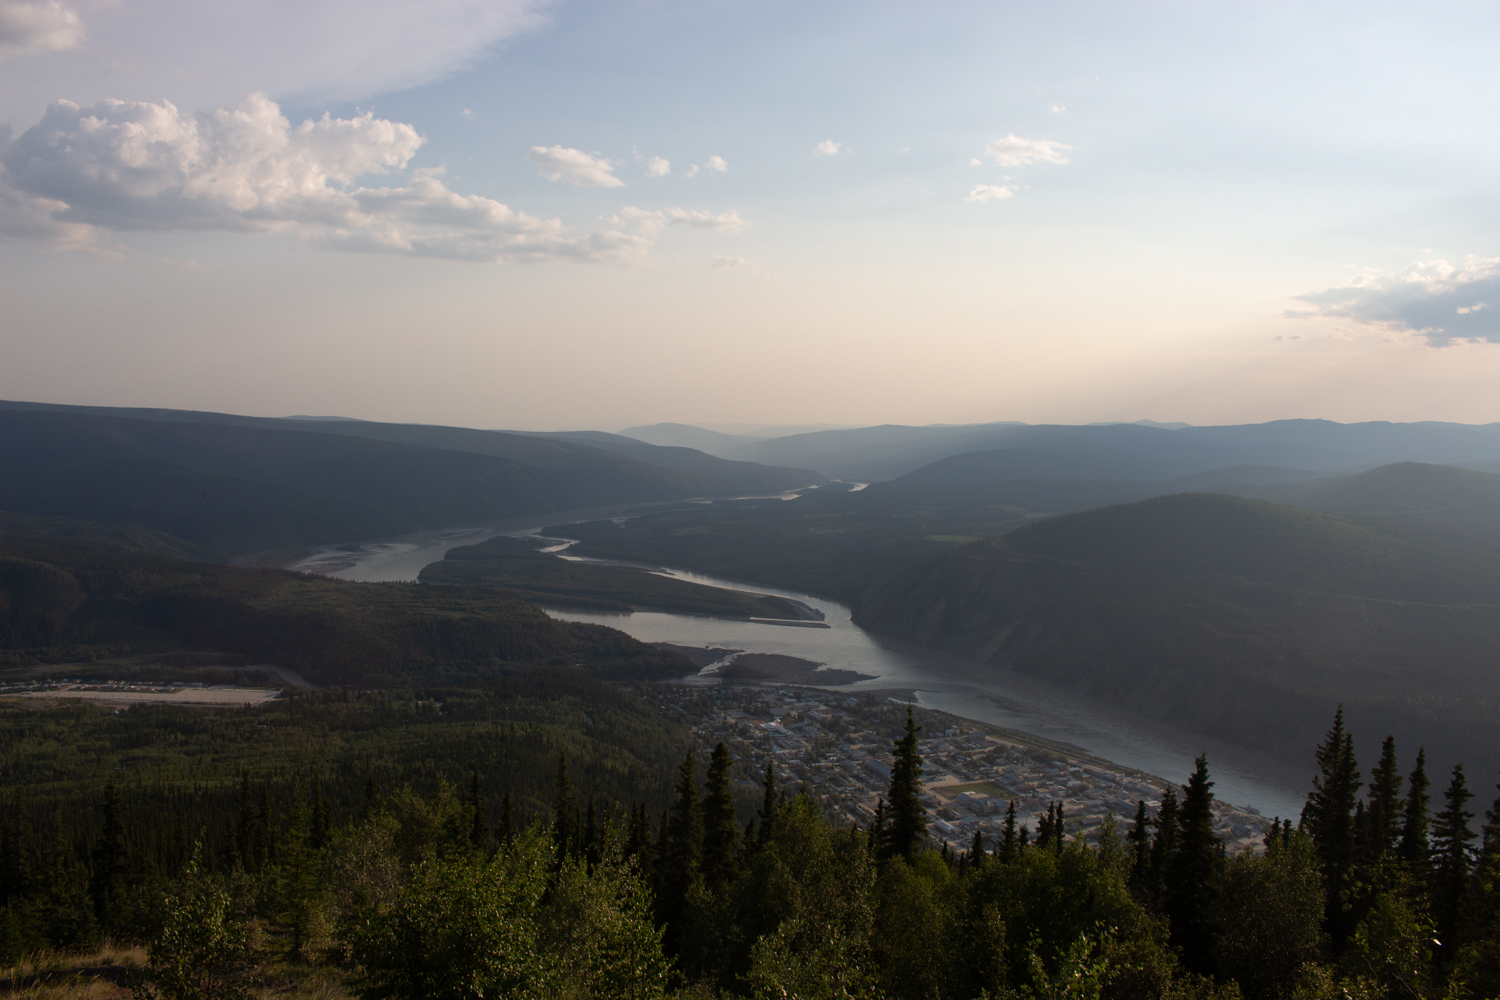 The confluence of the Yukon River and the Klondike River, where the Tr'ondëk Hwëch'in people had their fish camp. Photo by Caroline Mercer